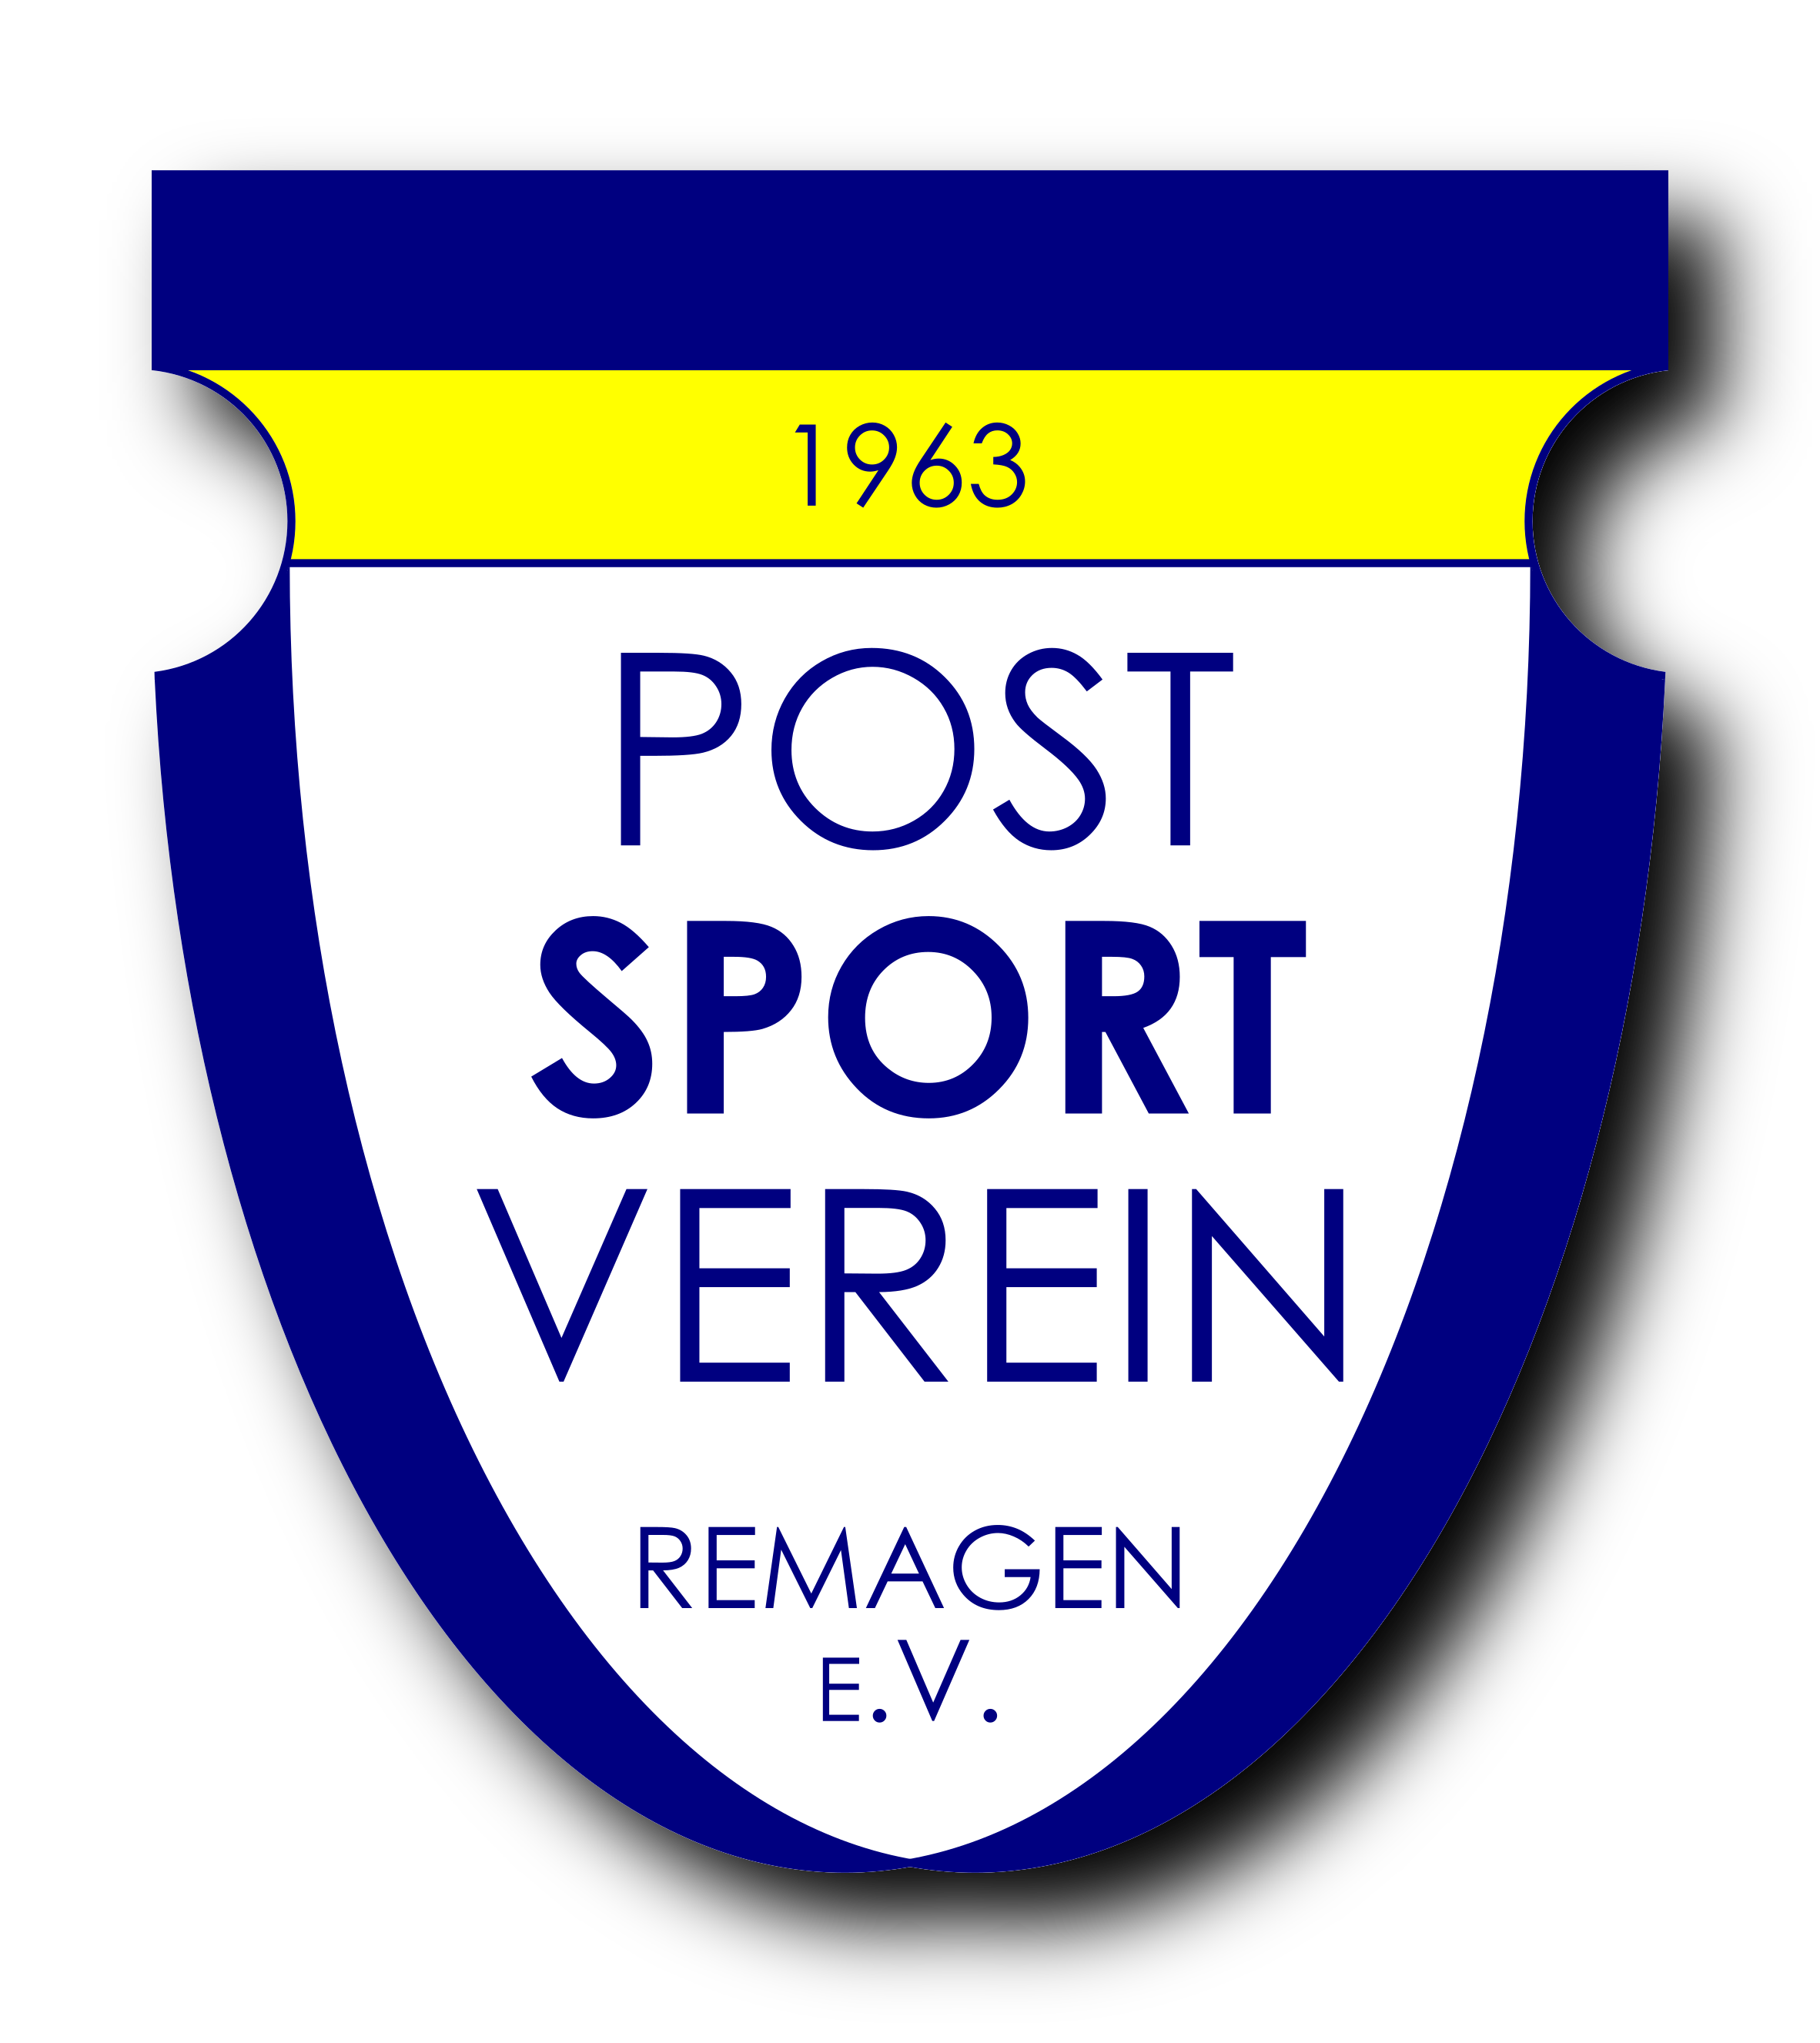 Postsportverein Remagen e.V.